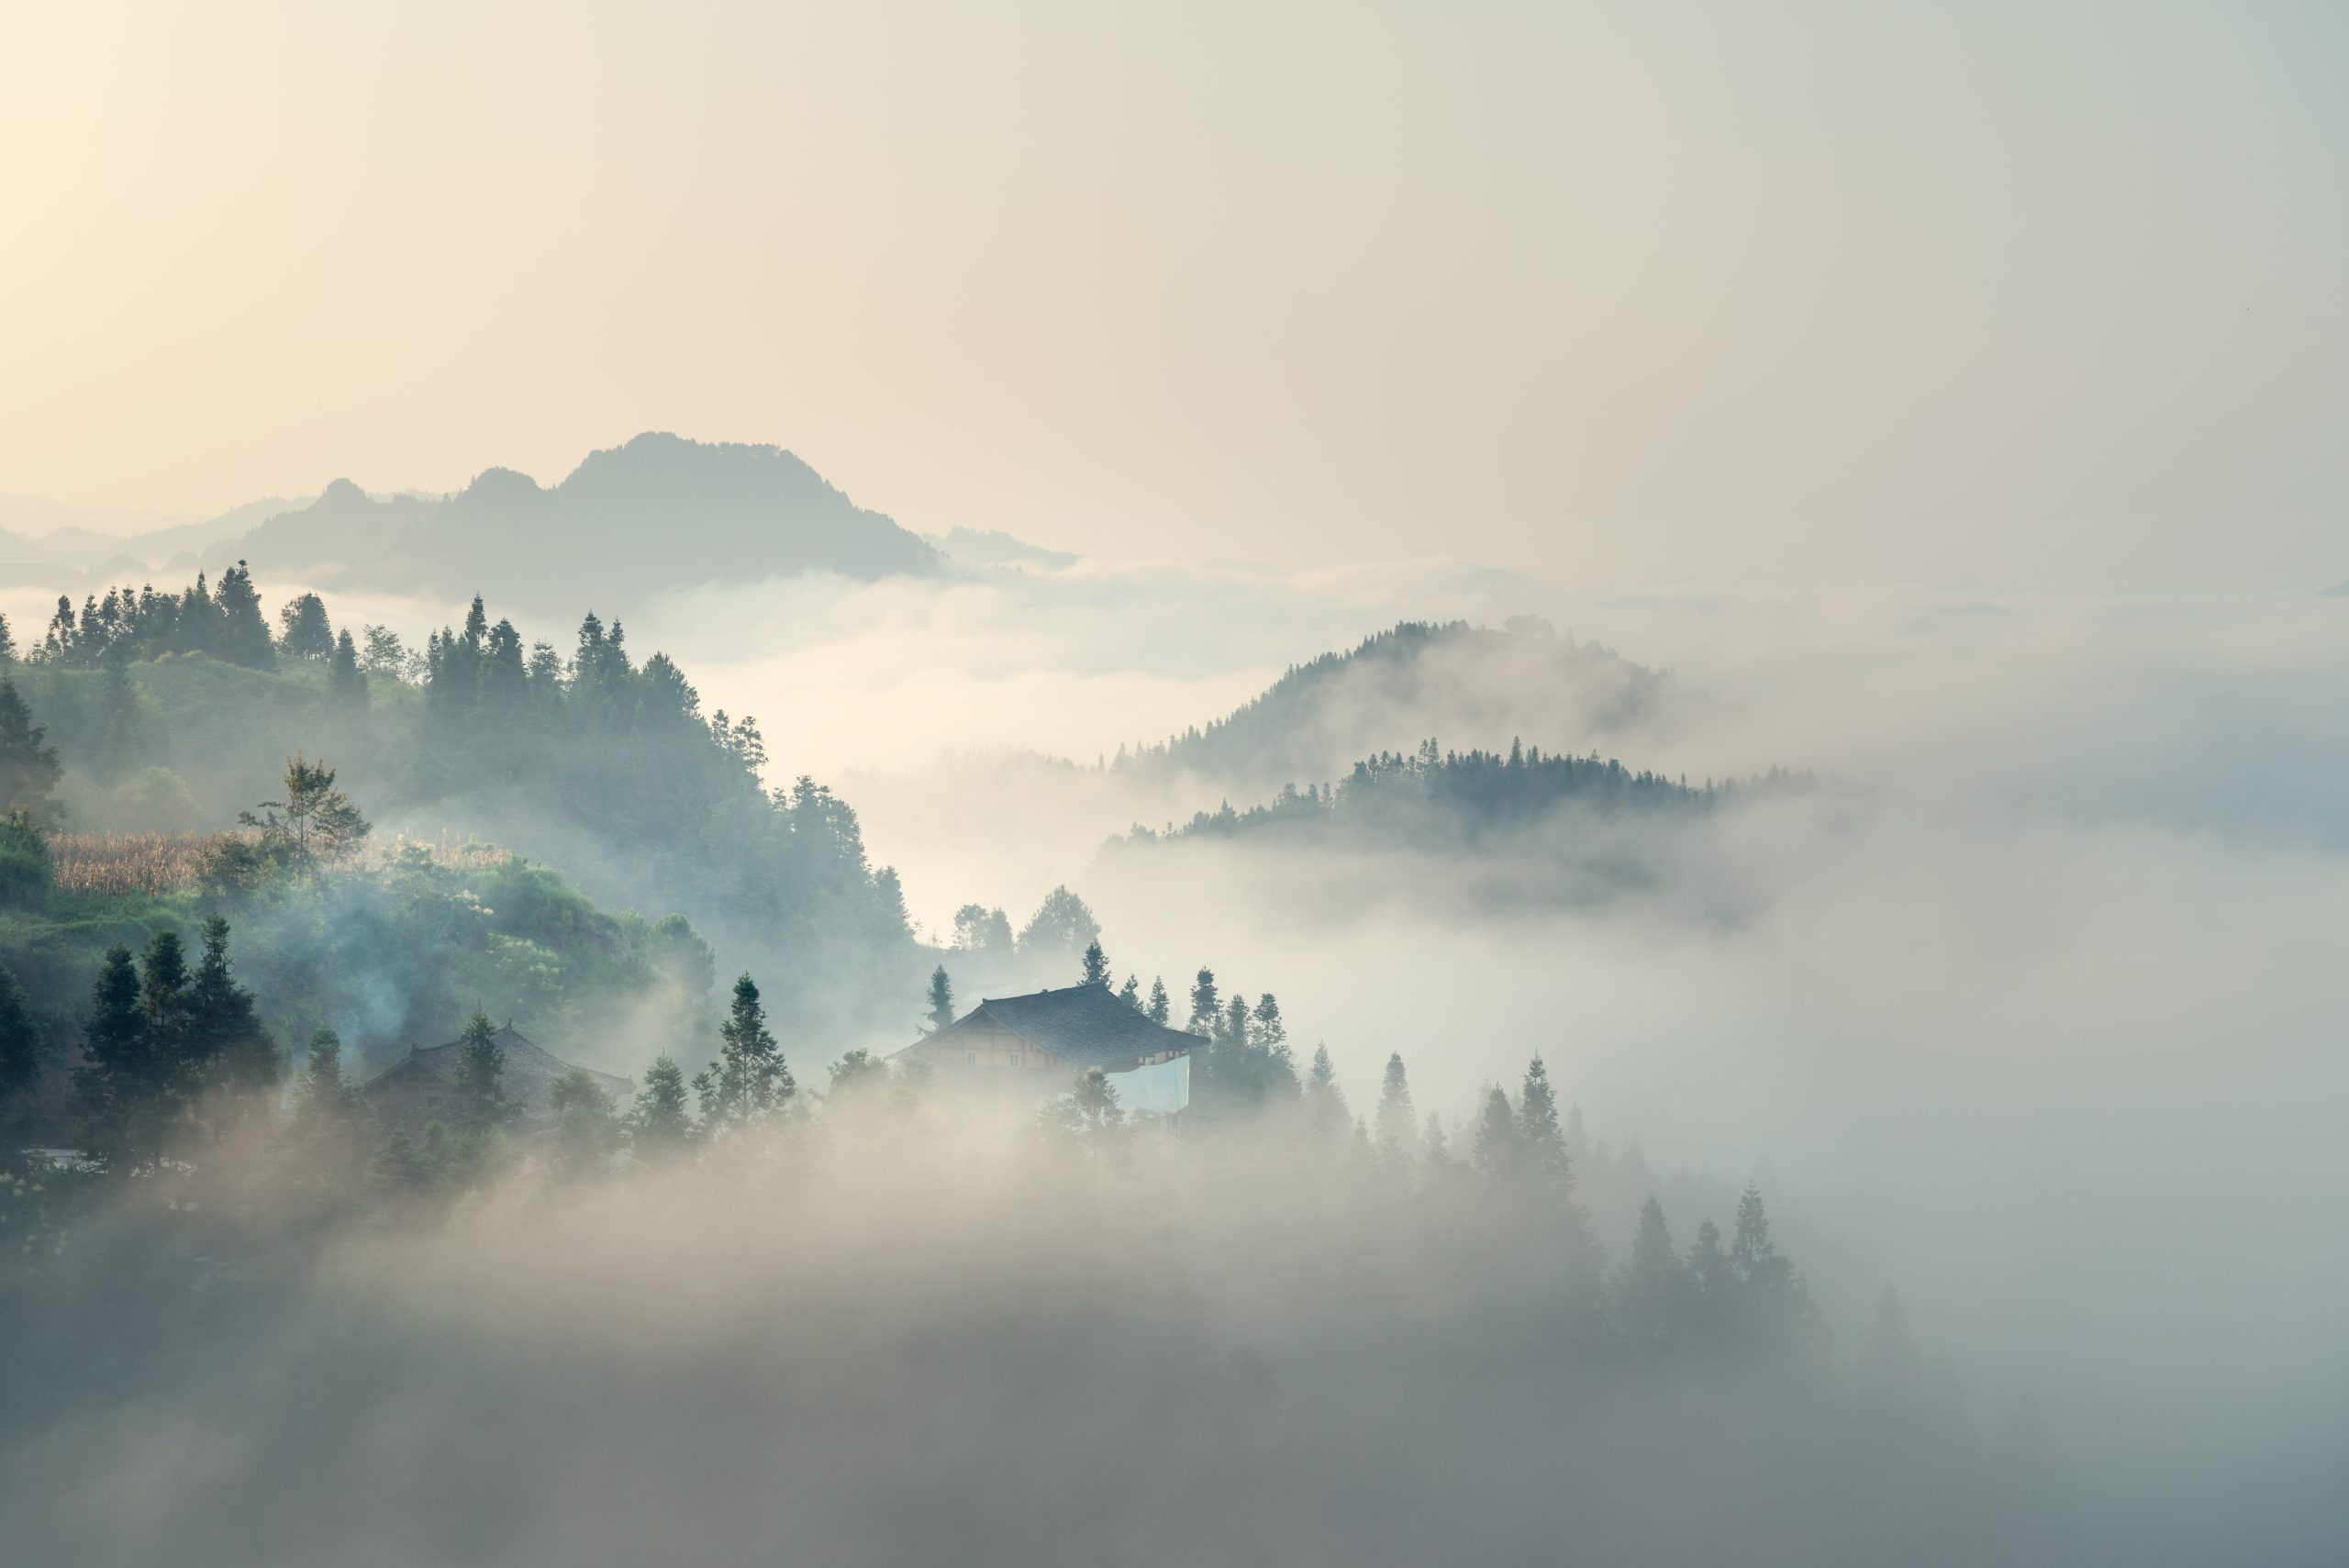 The morning mist in guizhou,china